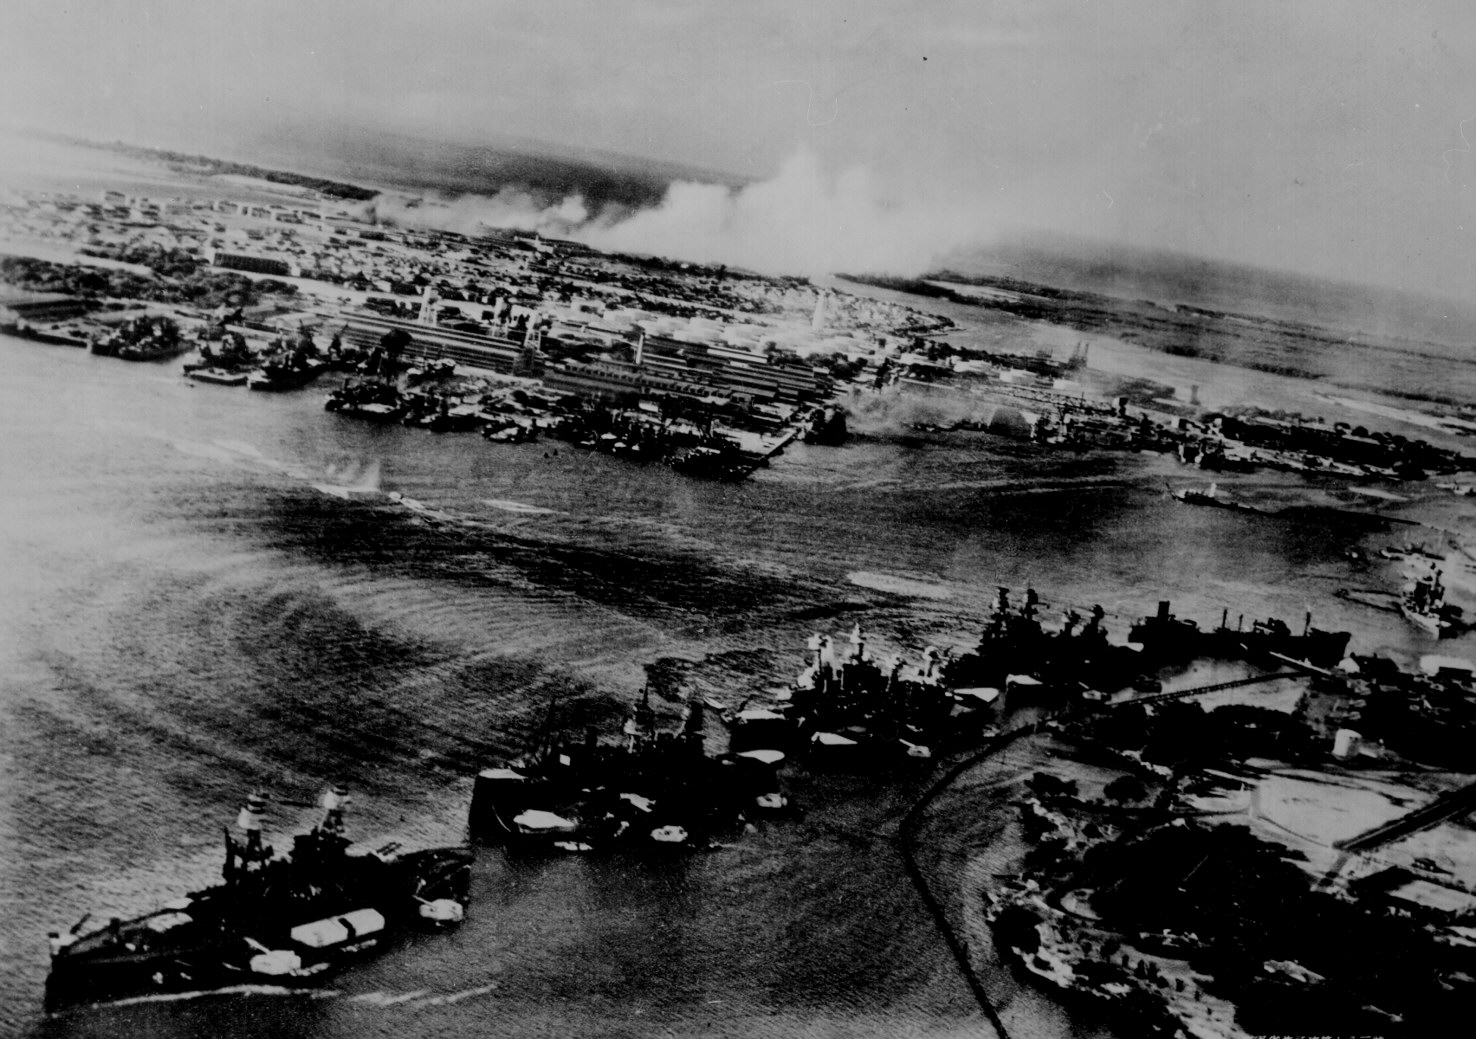 Archive USN photos showing the devastation caused by IJN attack on Perl Harbor Hawaii 7th Dec 1941 01